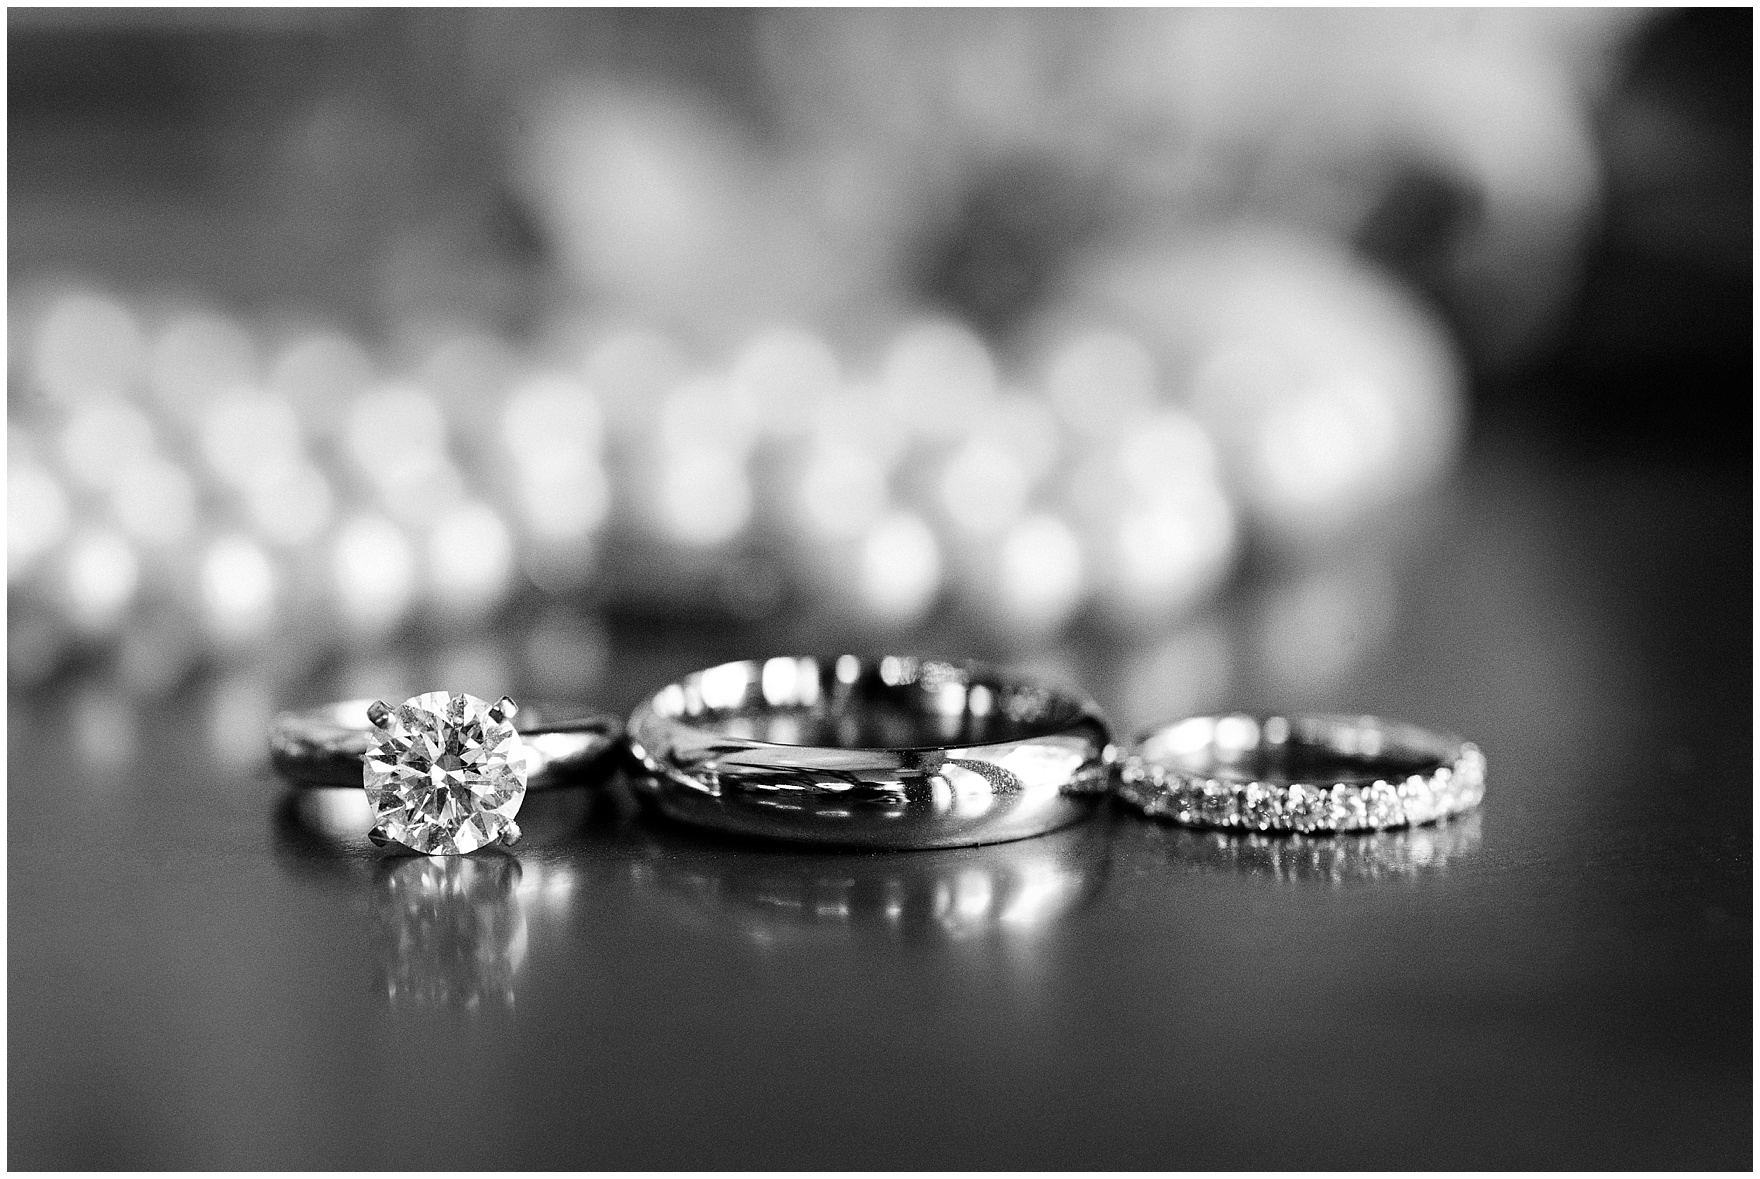 A close up photograph of wedding bands and an engagement ring for a Butterfield Country Club wedding.